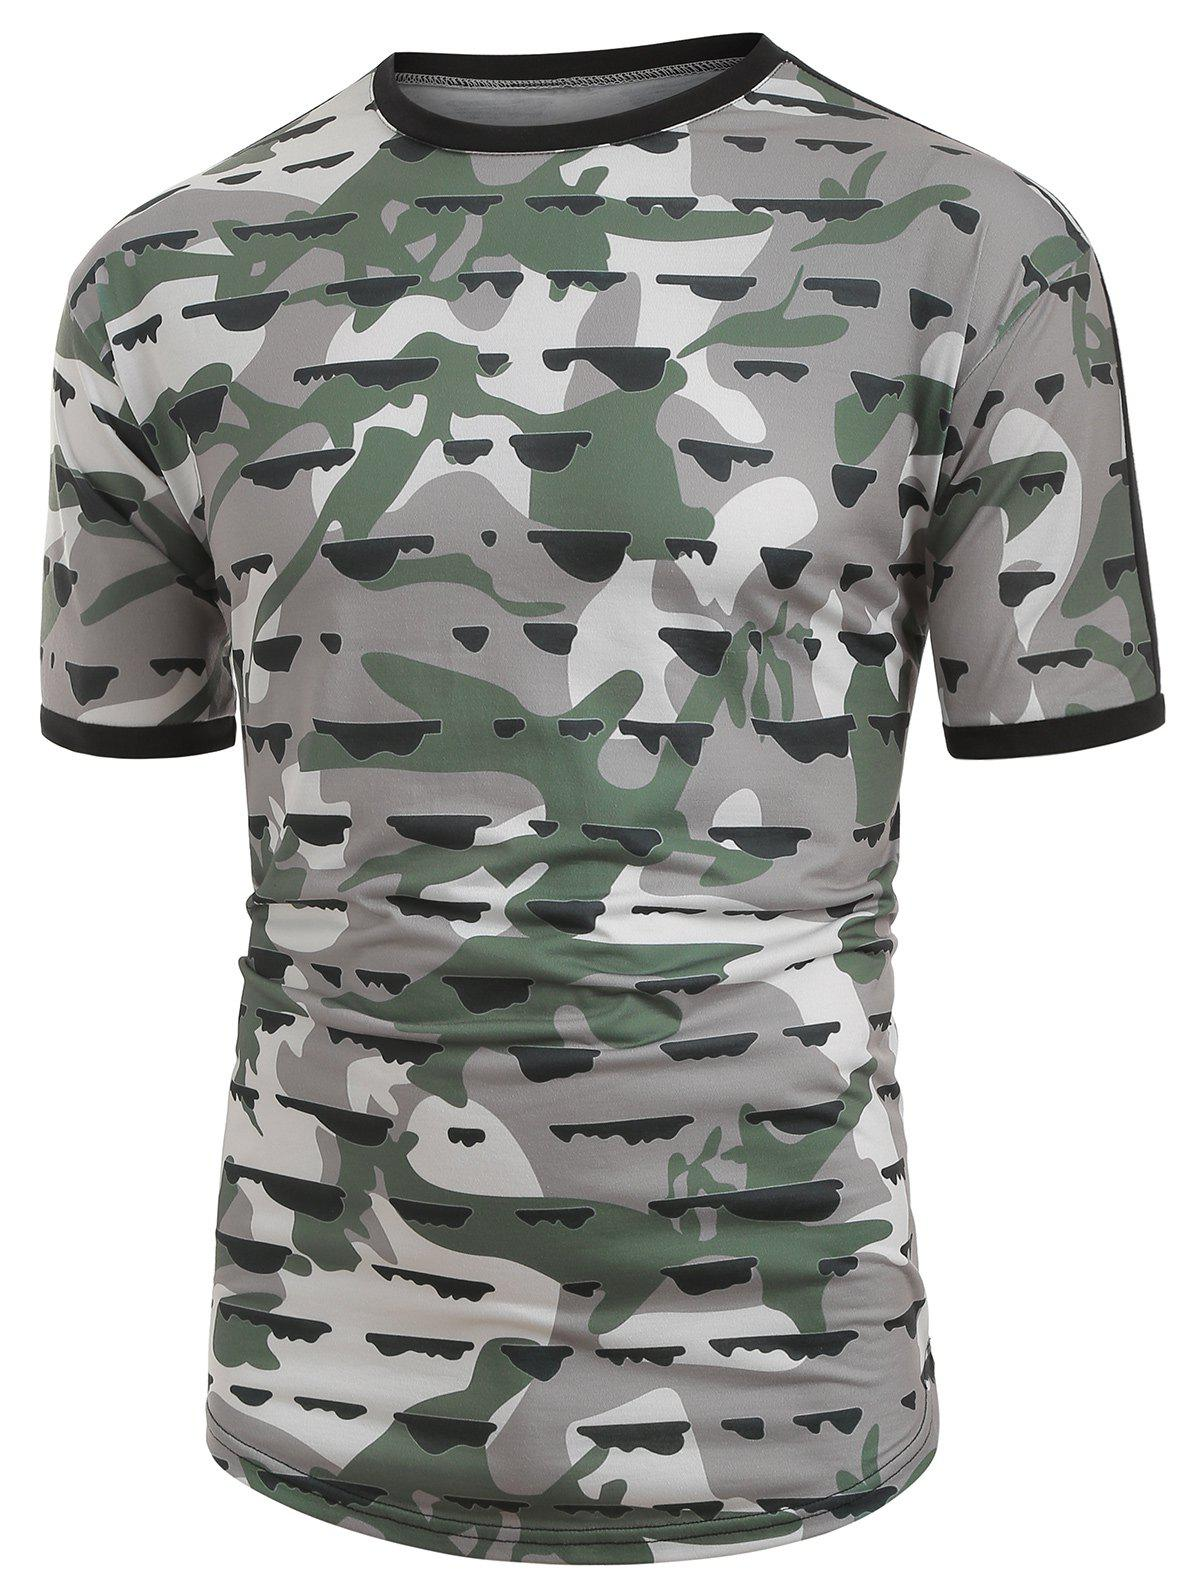 Unique Camouflage Print Spliced Ringer T-shirt